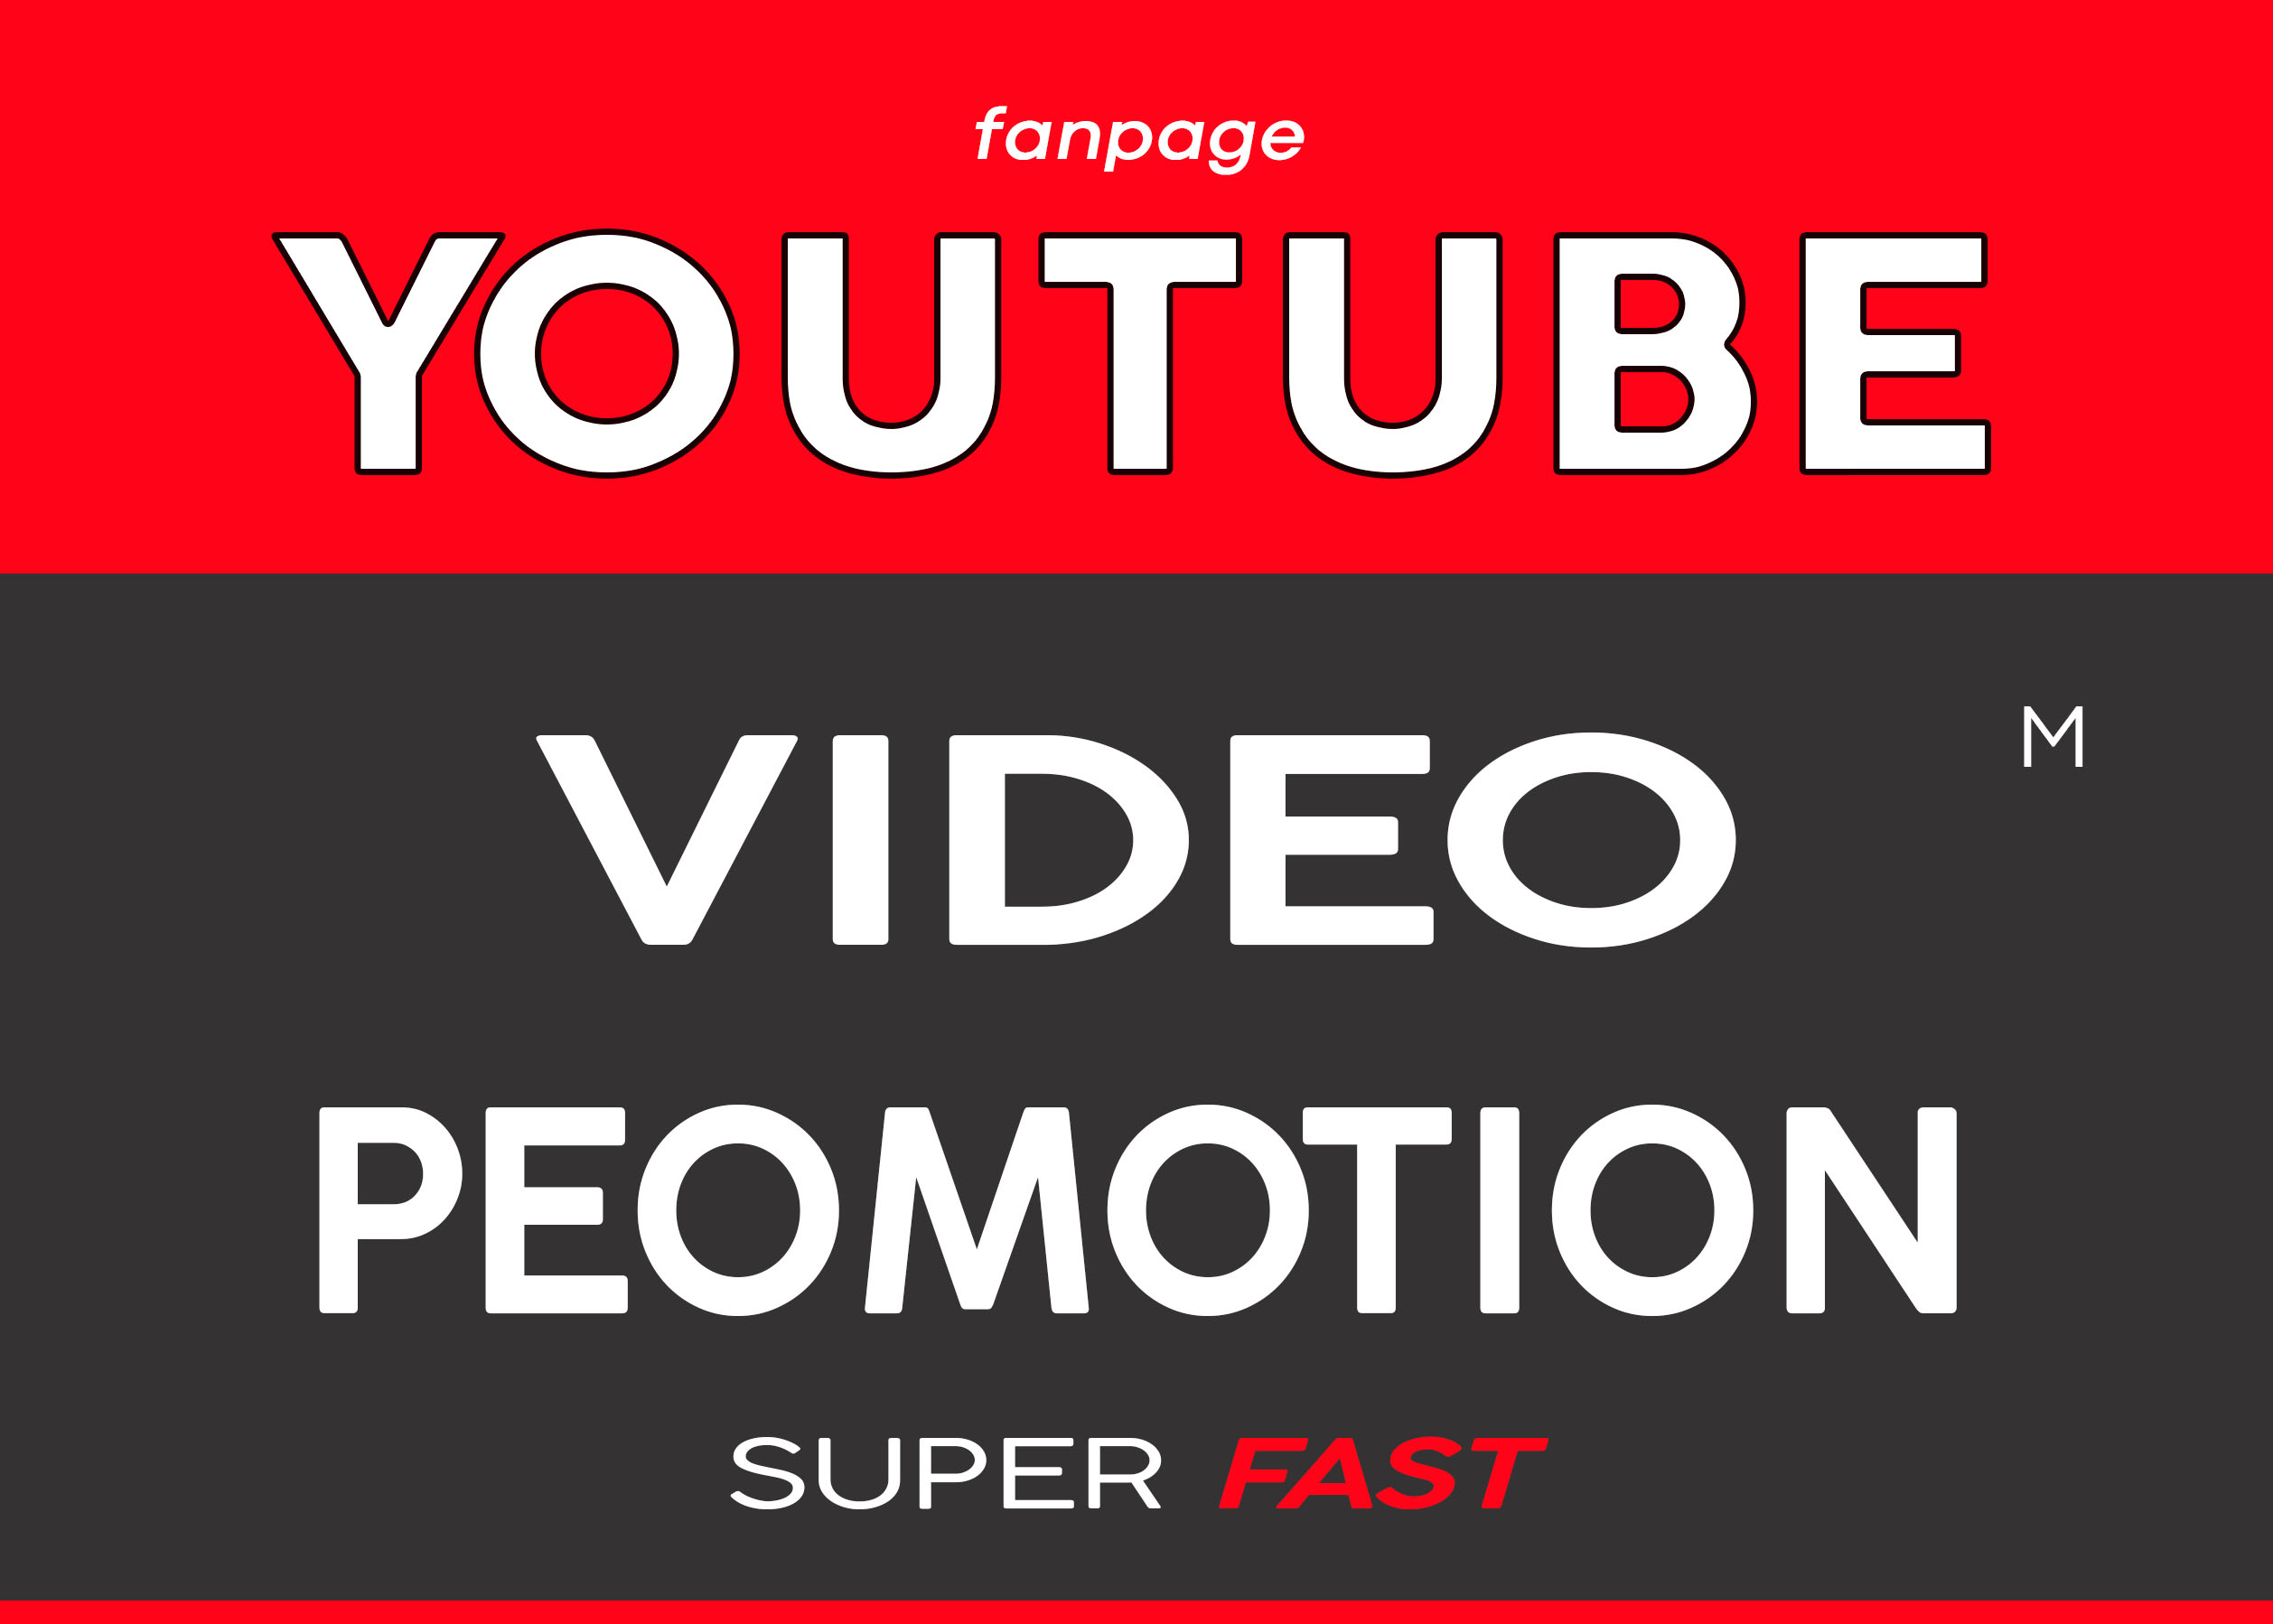 YOUTUBE VIDEO ORGANIC PROMOTION VIA REAL AUDIENCE